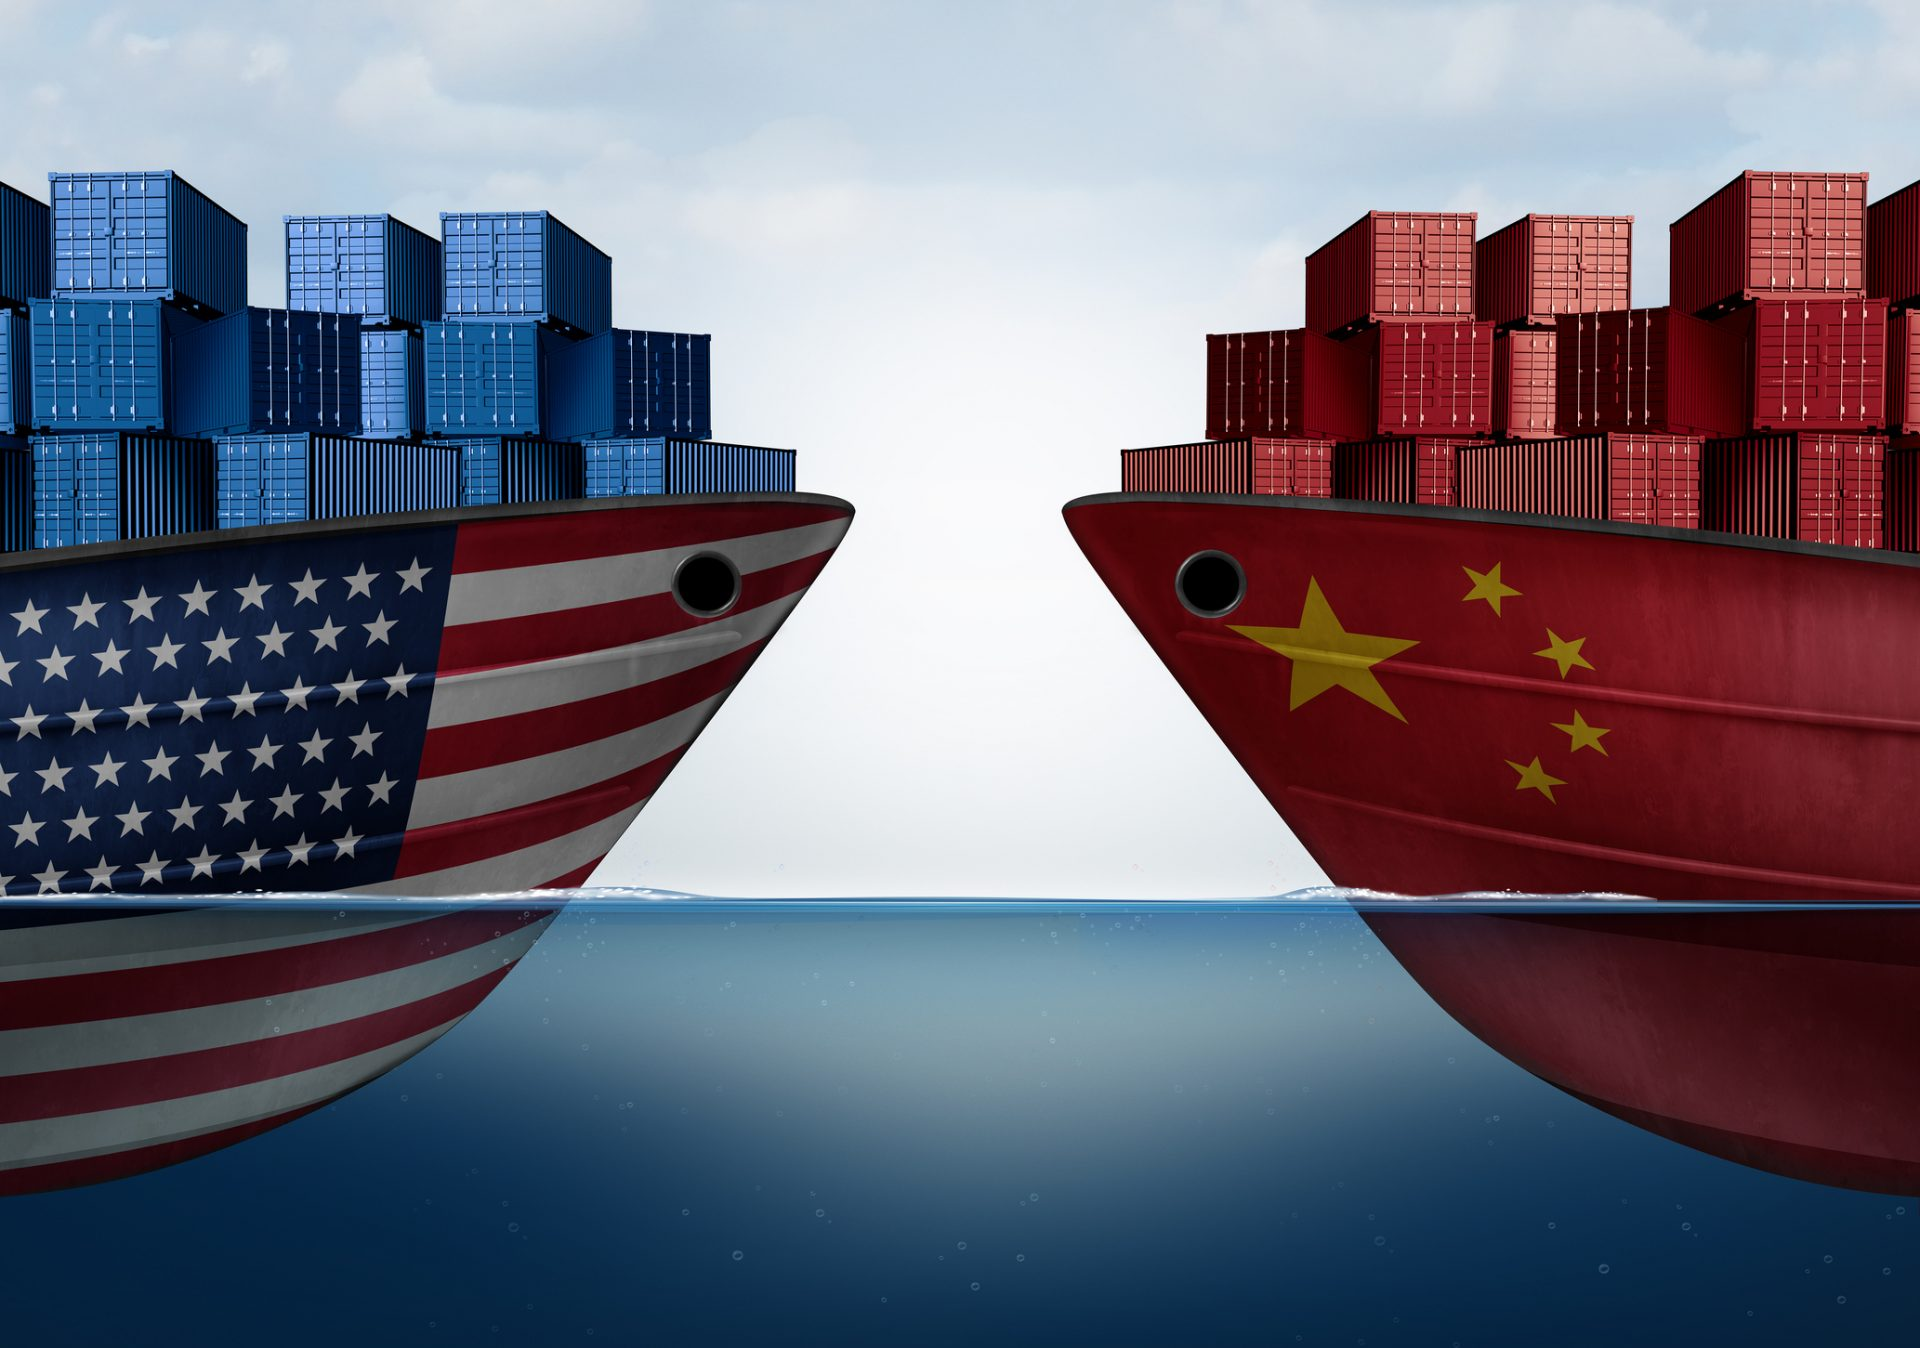 Section 301 Tariffs China United States trade and American tariffs as two opposing cargo ships as an economic taxation dispute over import and exports concept as a 3D illustration.